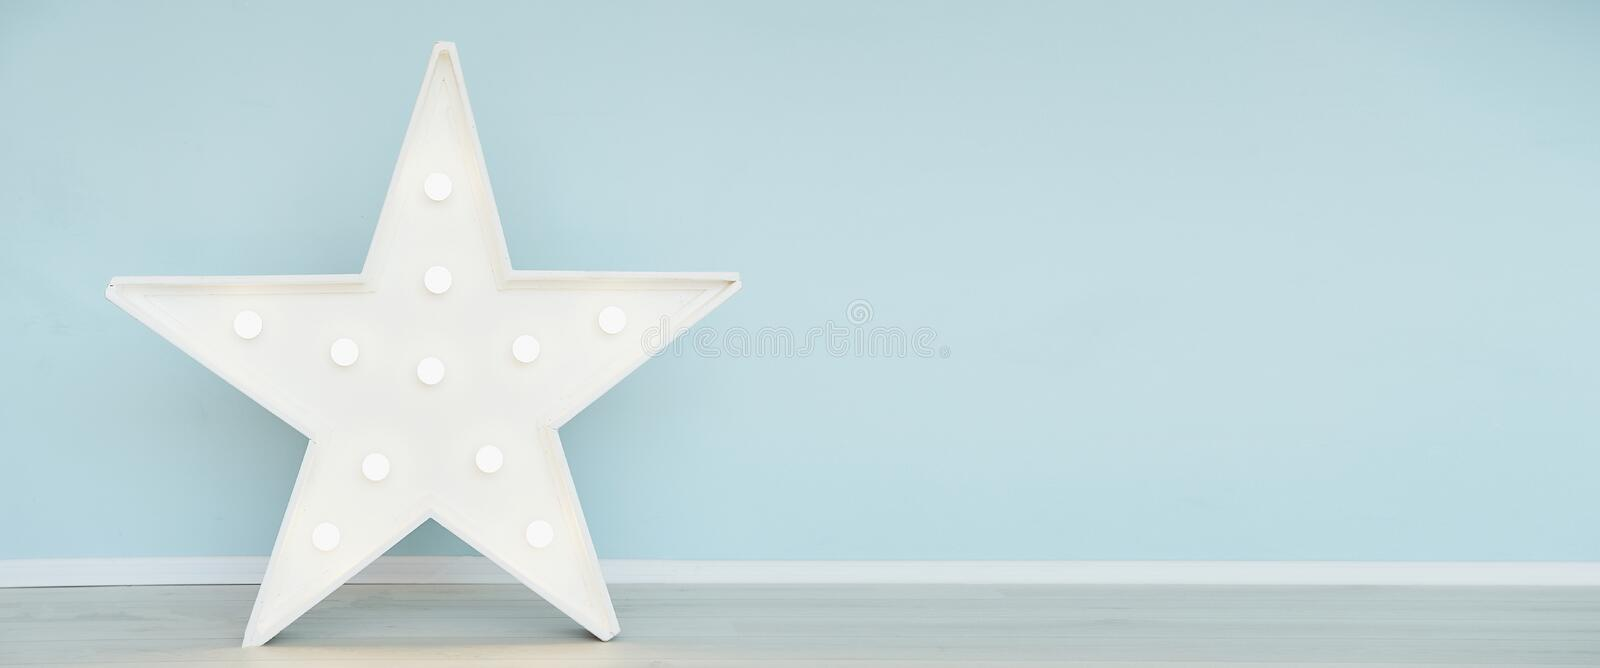 Star lamp on floor on background of blue wall. Big star with bulb lights. Modern home decoration royalty free stock photos